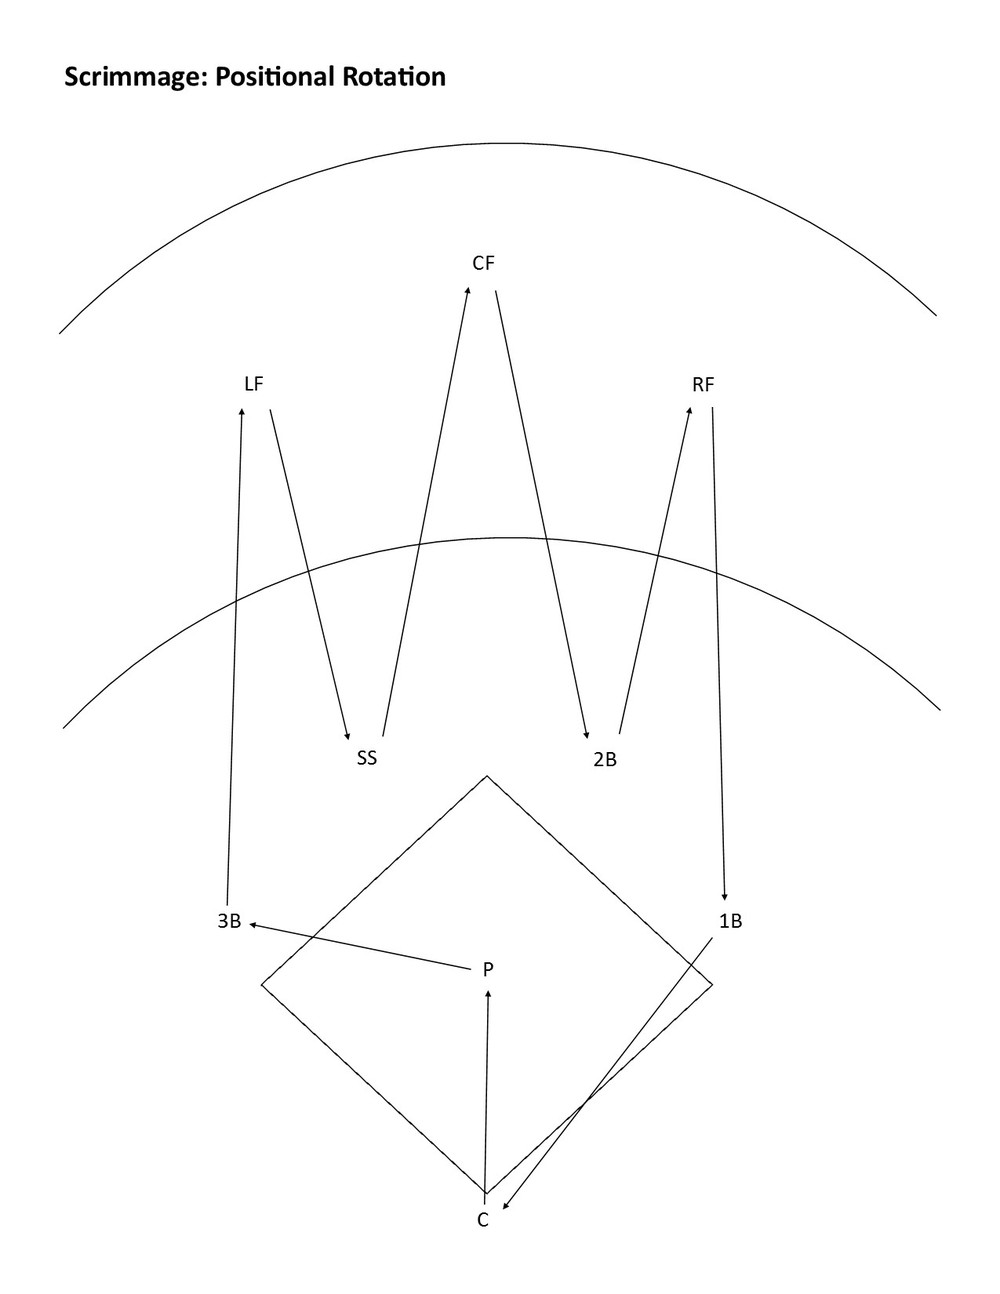 The rotation is very simple. Starting at third base, the players move one position to their left when they rotate. The third baseman moves to left field, the left fielder moves to shortstop, the shortstop moves to center field, etc. From first base the rotation follows the position numbers: 3-2-1; first base to catcher to pitcher. The pitcher rotates to third base.